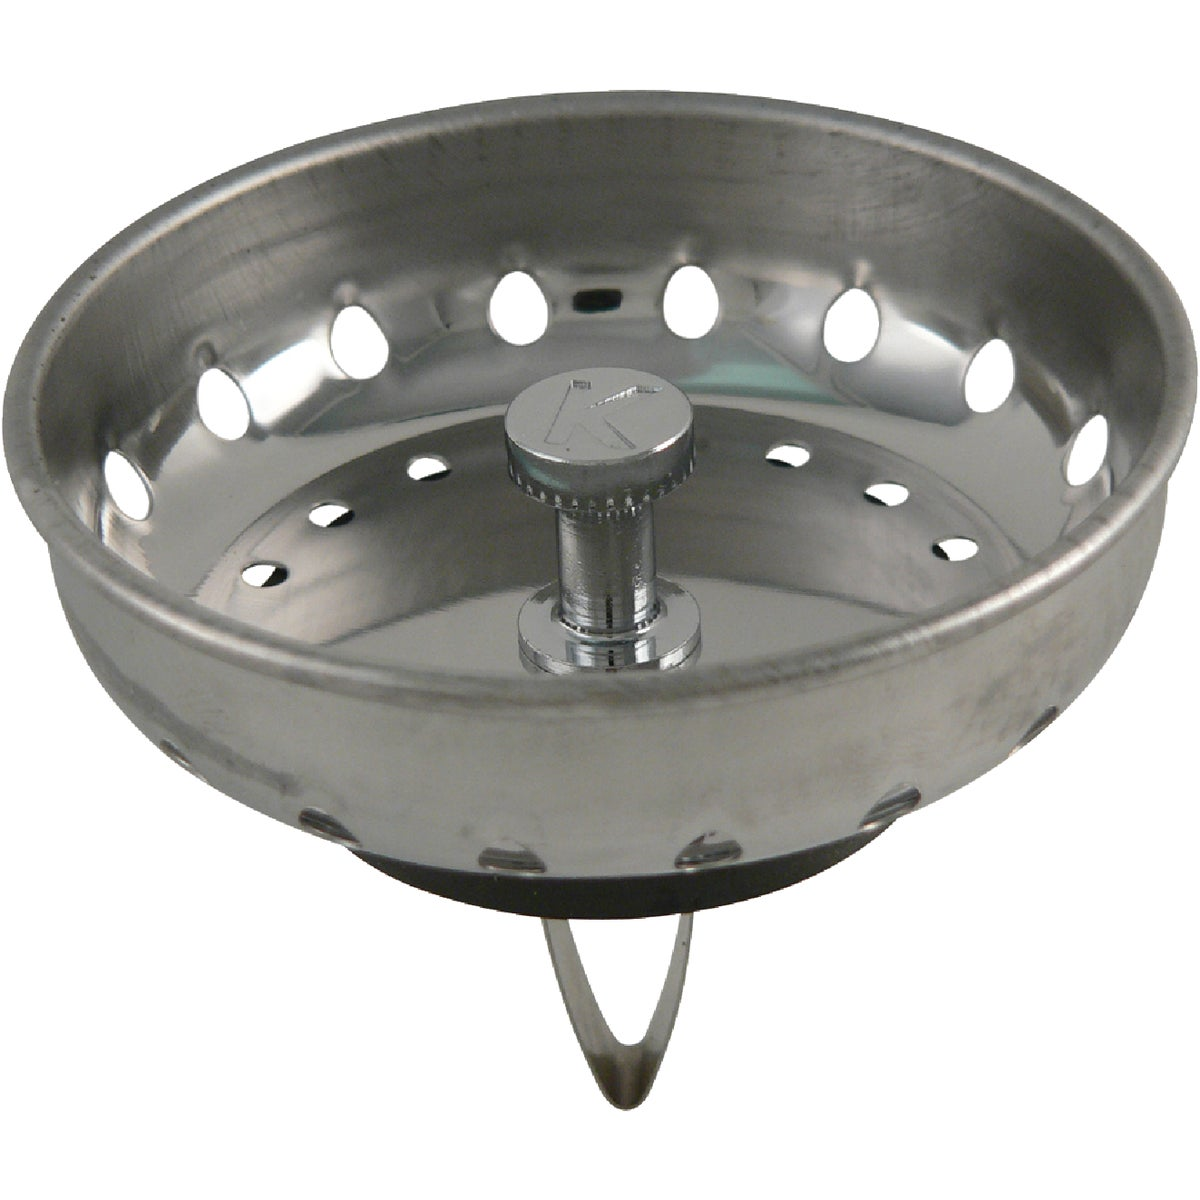 BASKET STRAINER - 649006BA by Watts Regulator Co